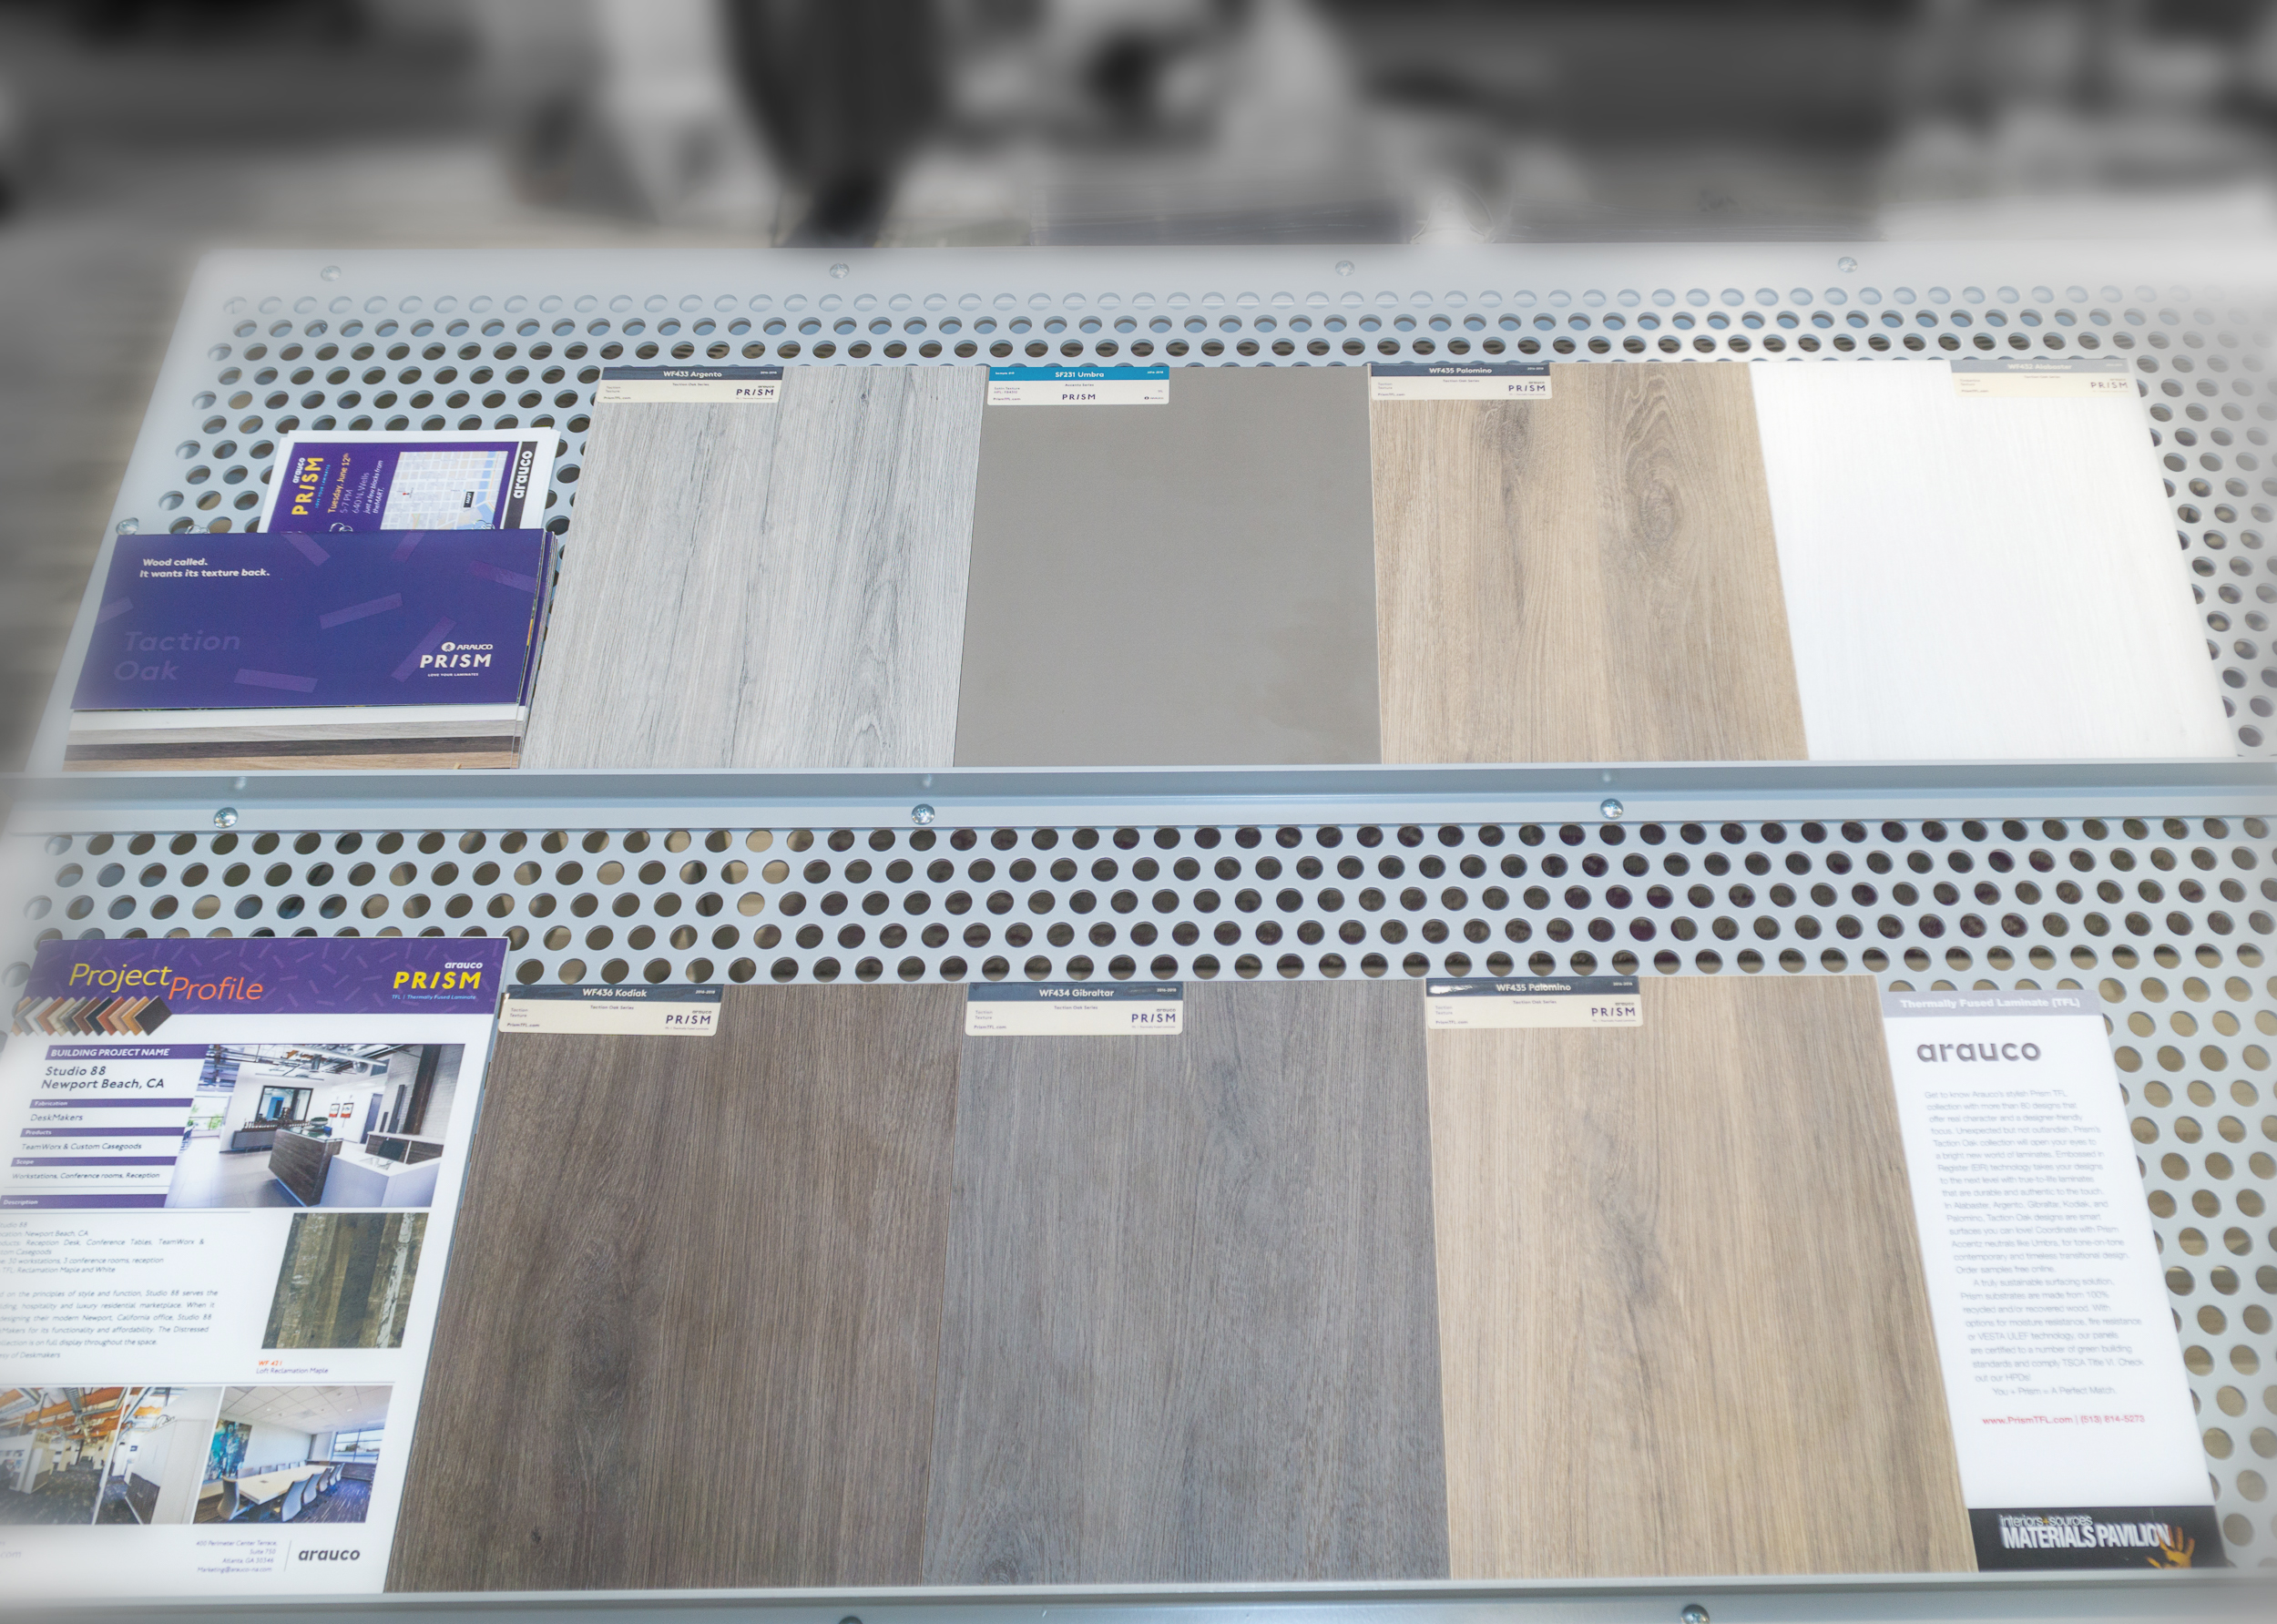 Arauco Prism TFL Decorative Panels   Learn more about TFL panels  here .